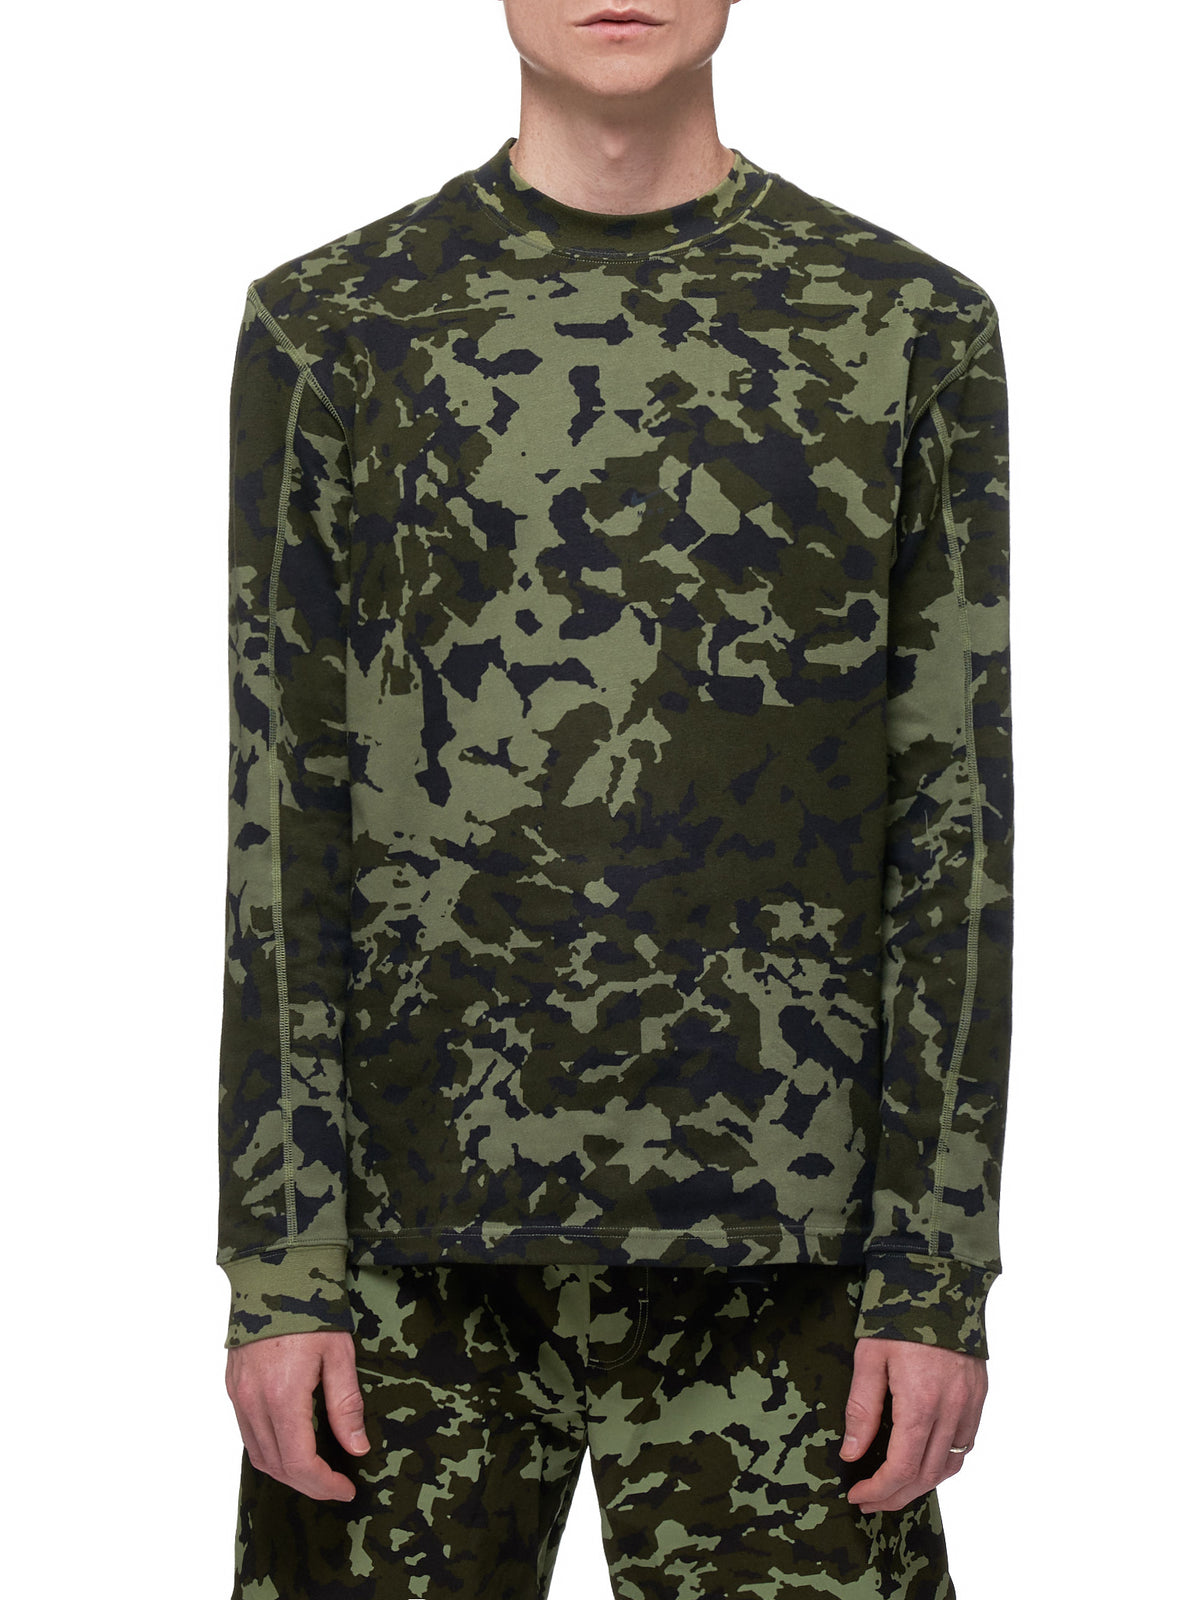 Generative Camo Top (AR5613-331-GREEN)